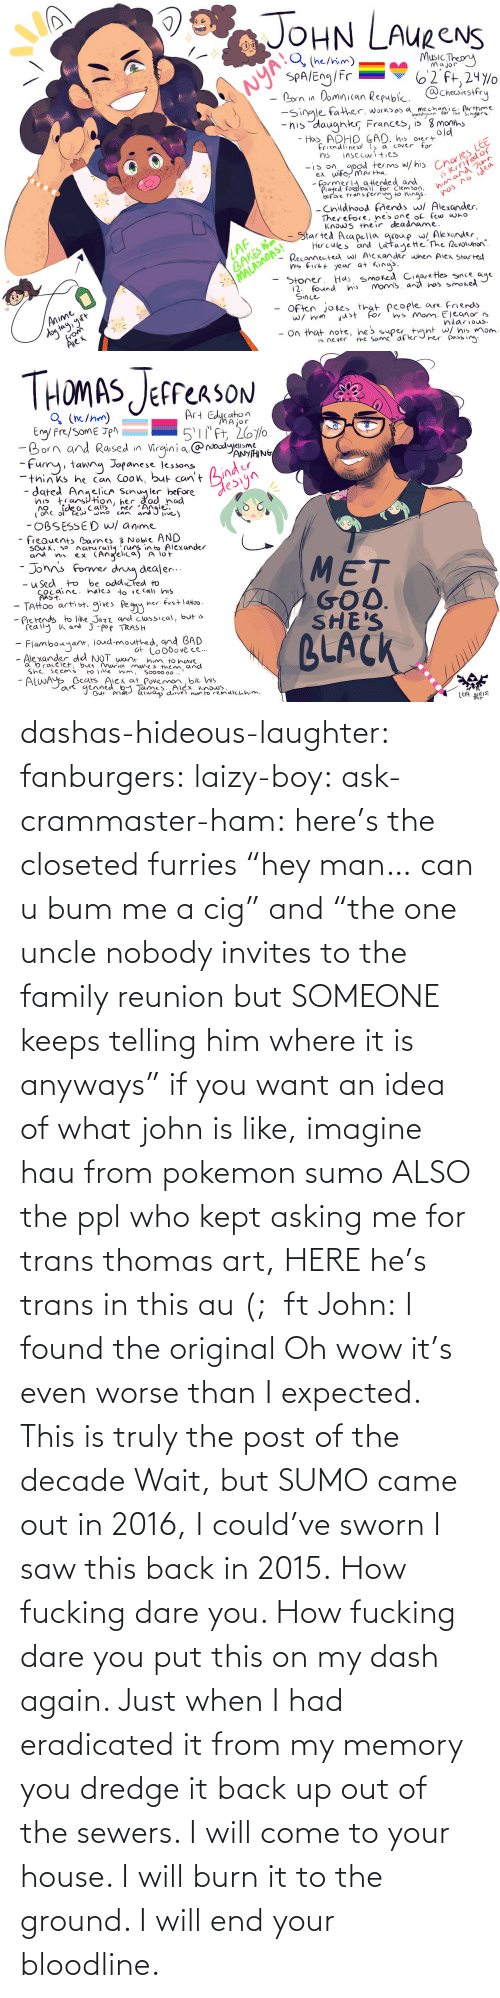 "From: dashas-hideous-laughter:  fanburgers:   laizy-boy:   ask-crammaster-ham:   here's the closeted furries ""hey man… can u bum me a cig"" and ""the one uncle nobody invites to the family reunion but SOMEONE keeps telling him where it is anyways""   if you want an idea of what john is like, imagine hau from pokemon sumo ALSO the ppl who kept asking me for trans thomas art, HERE he's trans in this au (;  ft John:    I found the original     Oh wow it's even worse than I expected. This is truly the post of the decade    Wait, but SUMO came out in 2016, I could've sworn I saw this back in 2015.    How fucking dare you. How fucking dare you put this on my dash again. Just when I had eradicated it from my memory you dredge it back up out of the sewers. I will come to your house. I will burn it to the ground. I will end your bloodline."